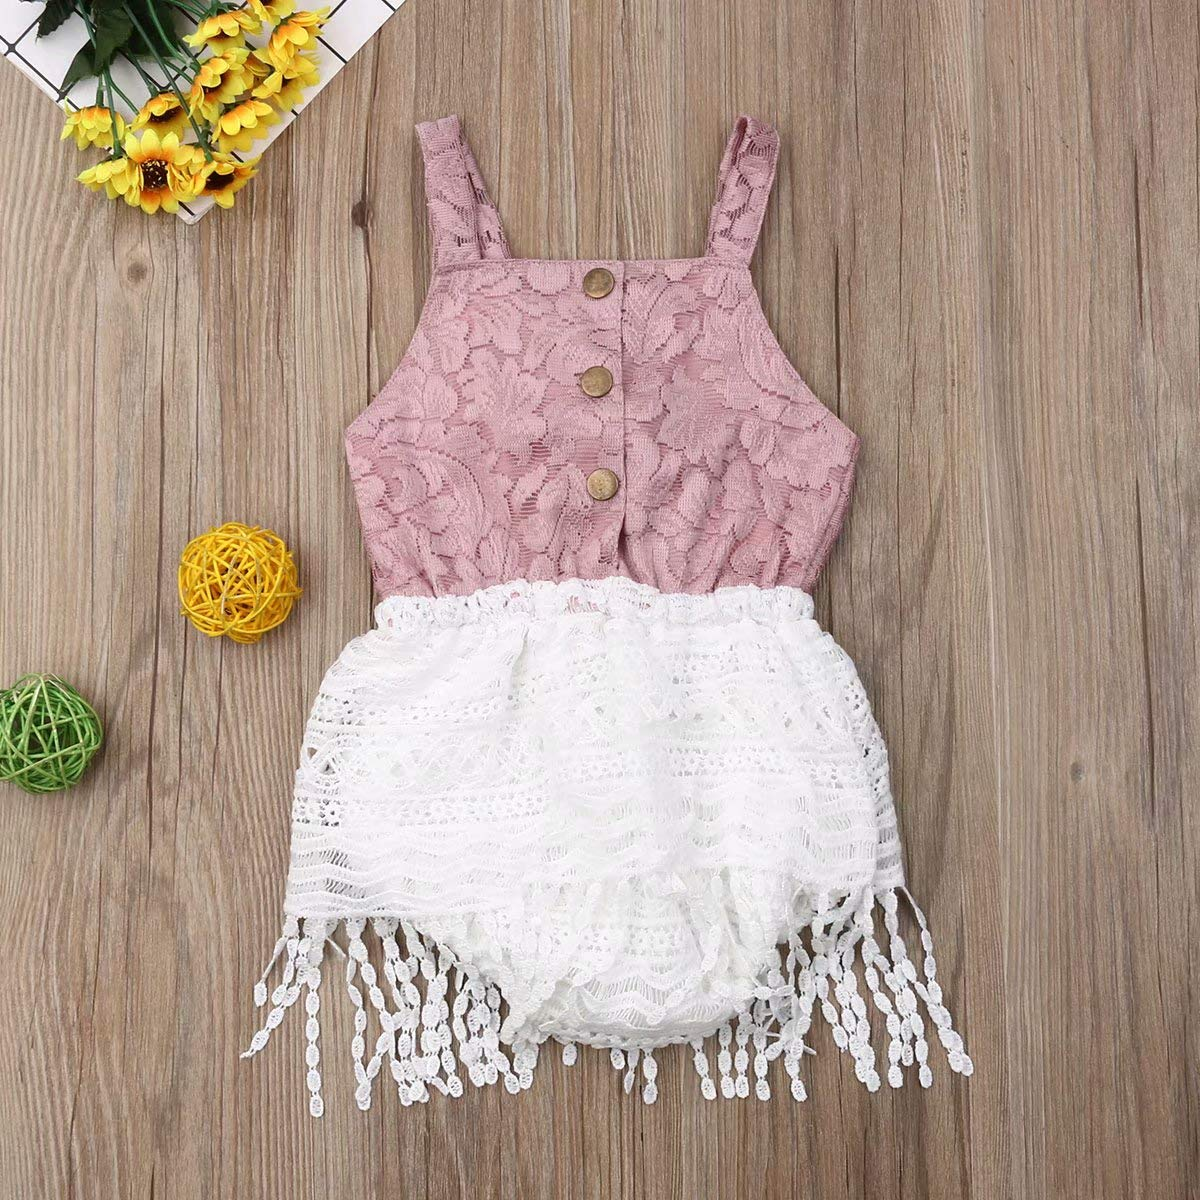 Seyurigaoka Infant Baby Girl Lace Onesie Sleeveless Big Bow Romper Button Down Jumpsuit Tassel Dress Summer Outfits